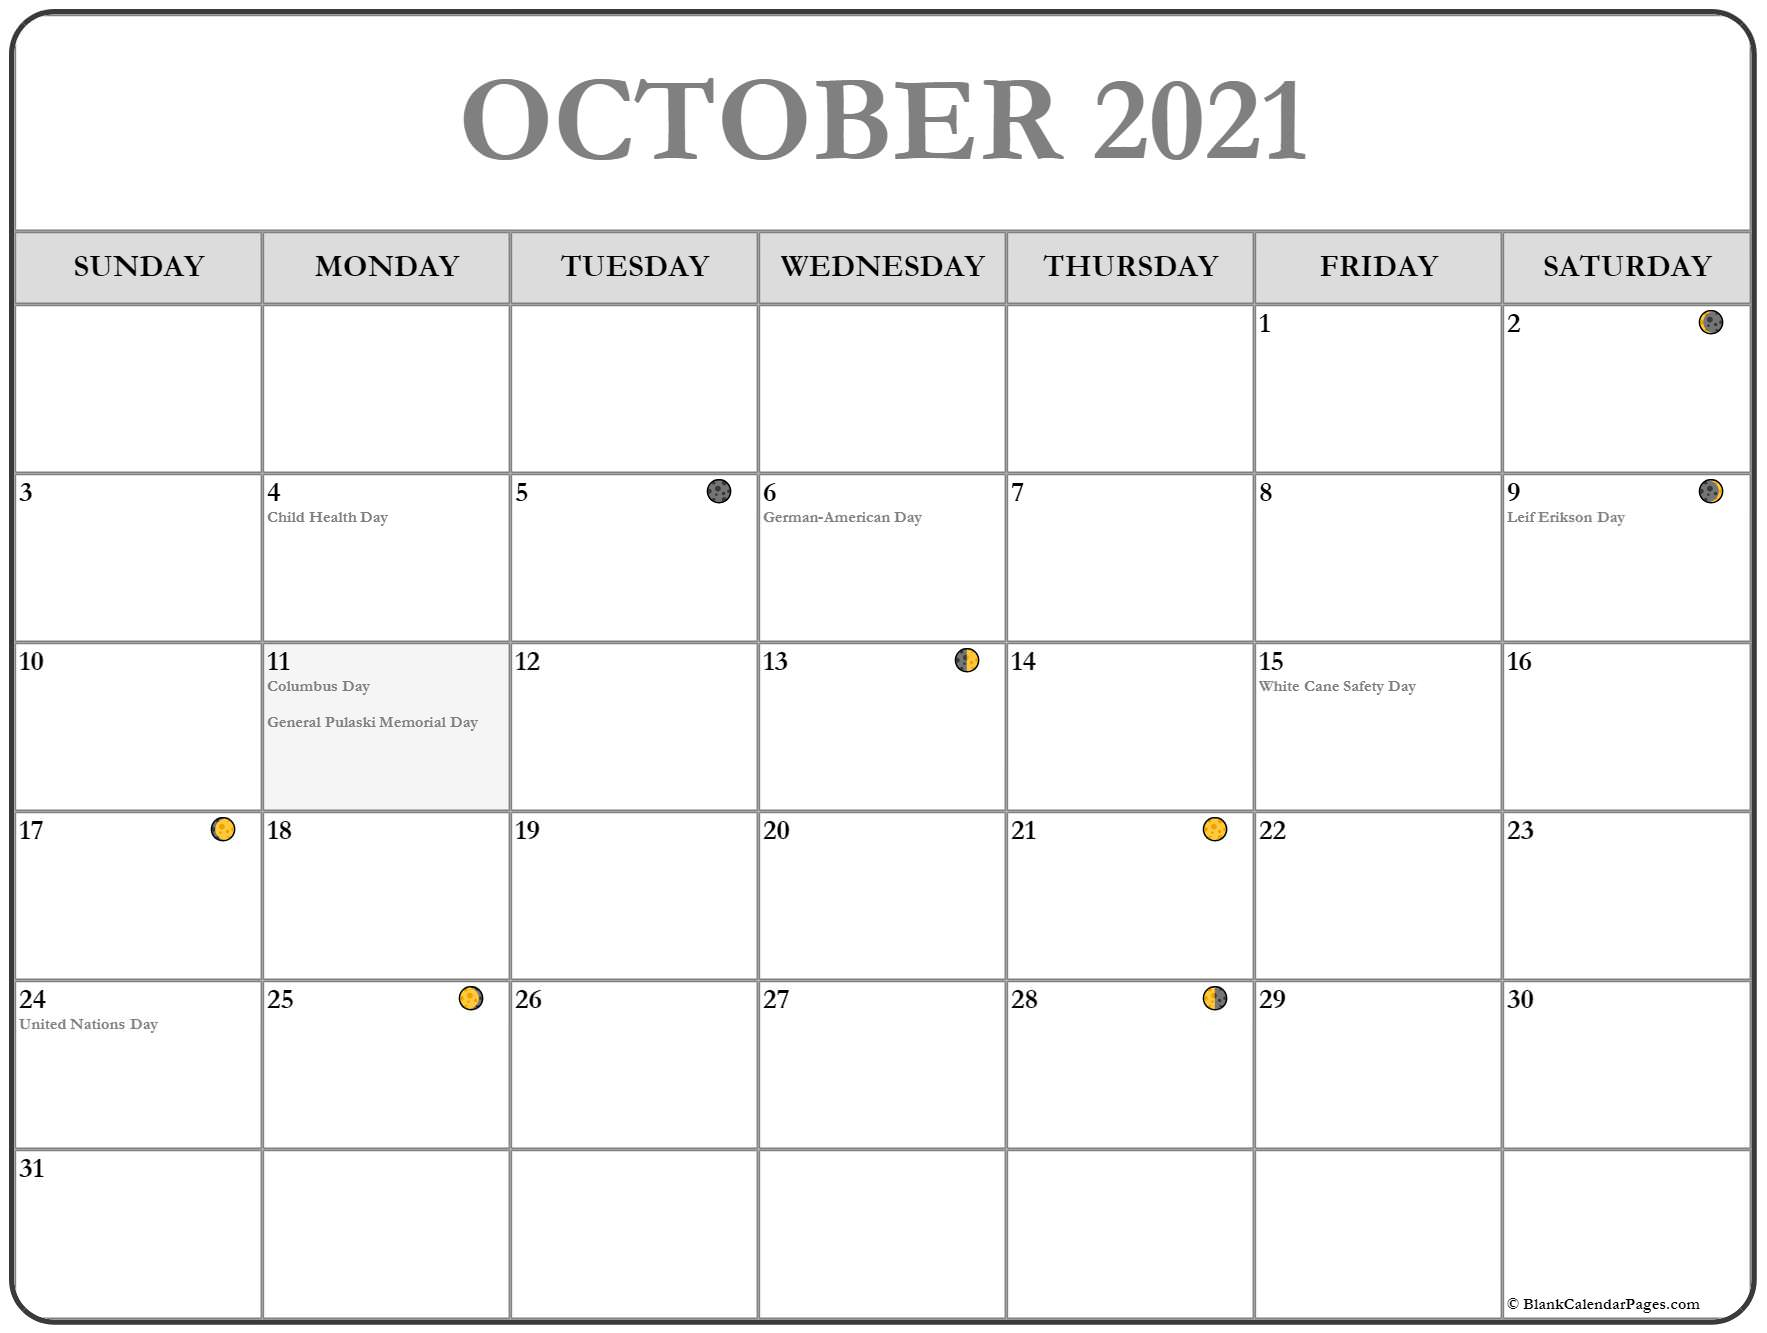 October 2021 Lunar Calendar | Moon Phase Calendar